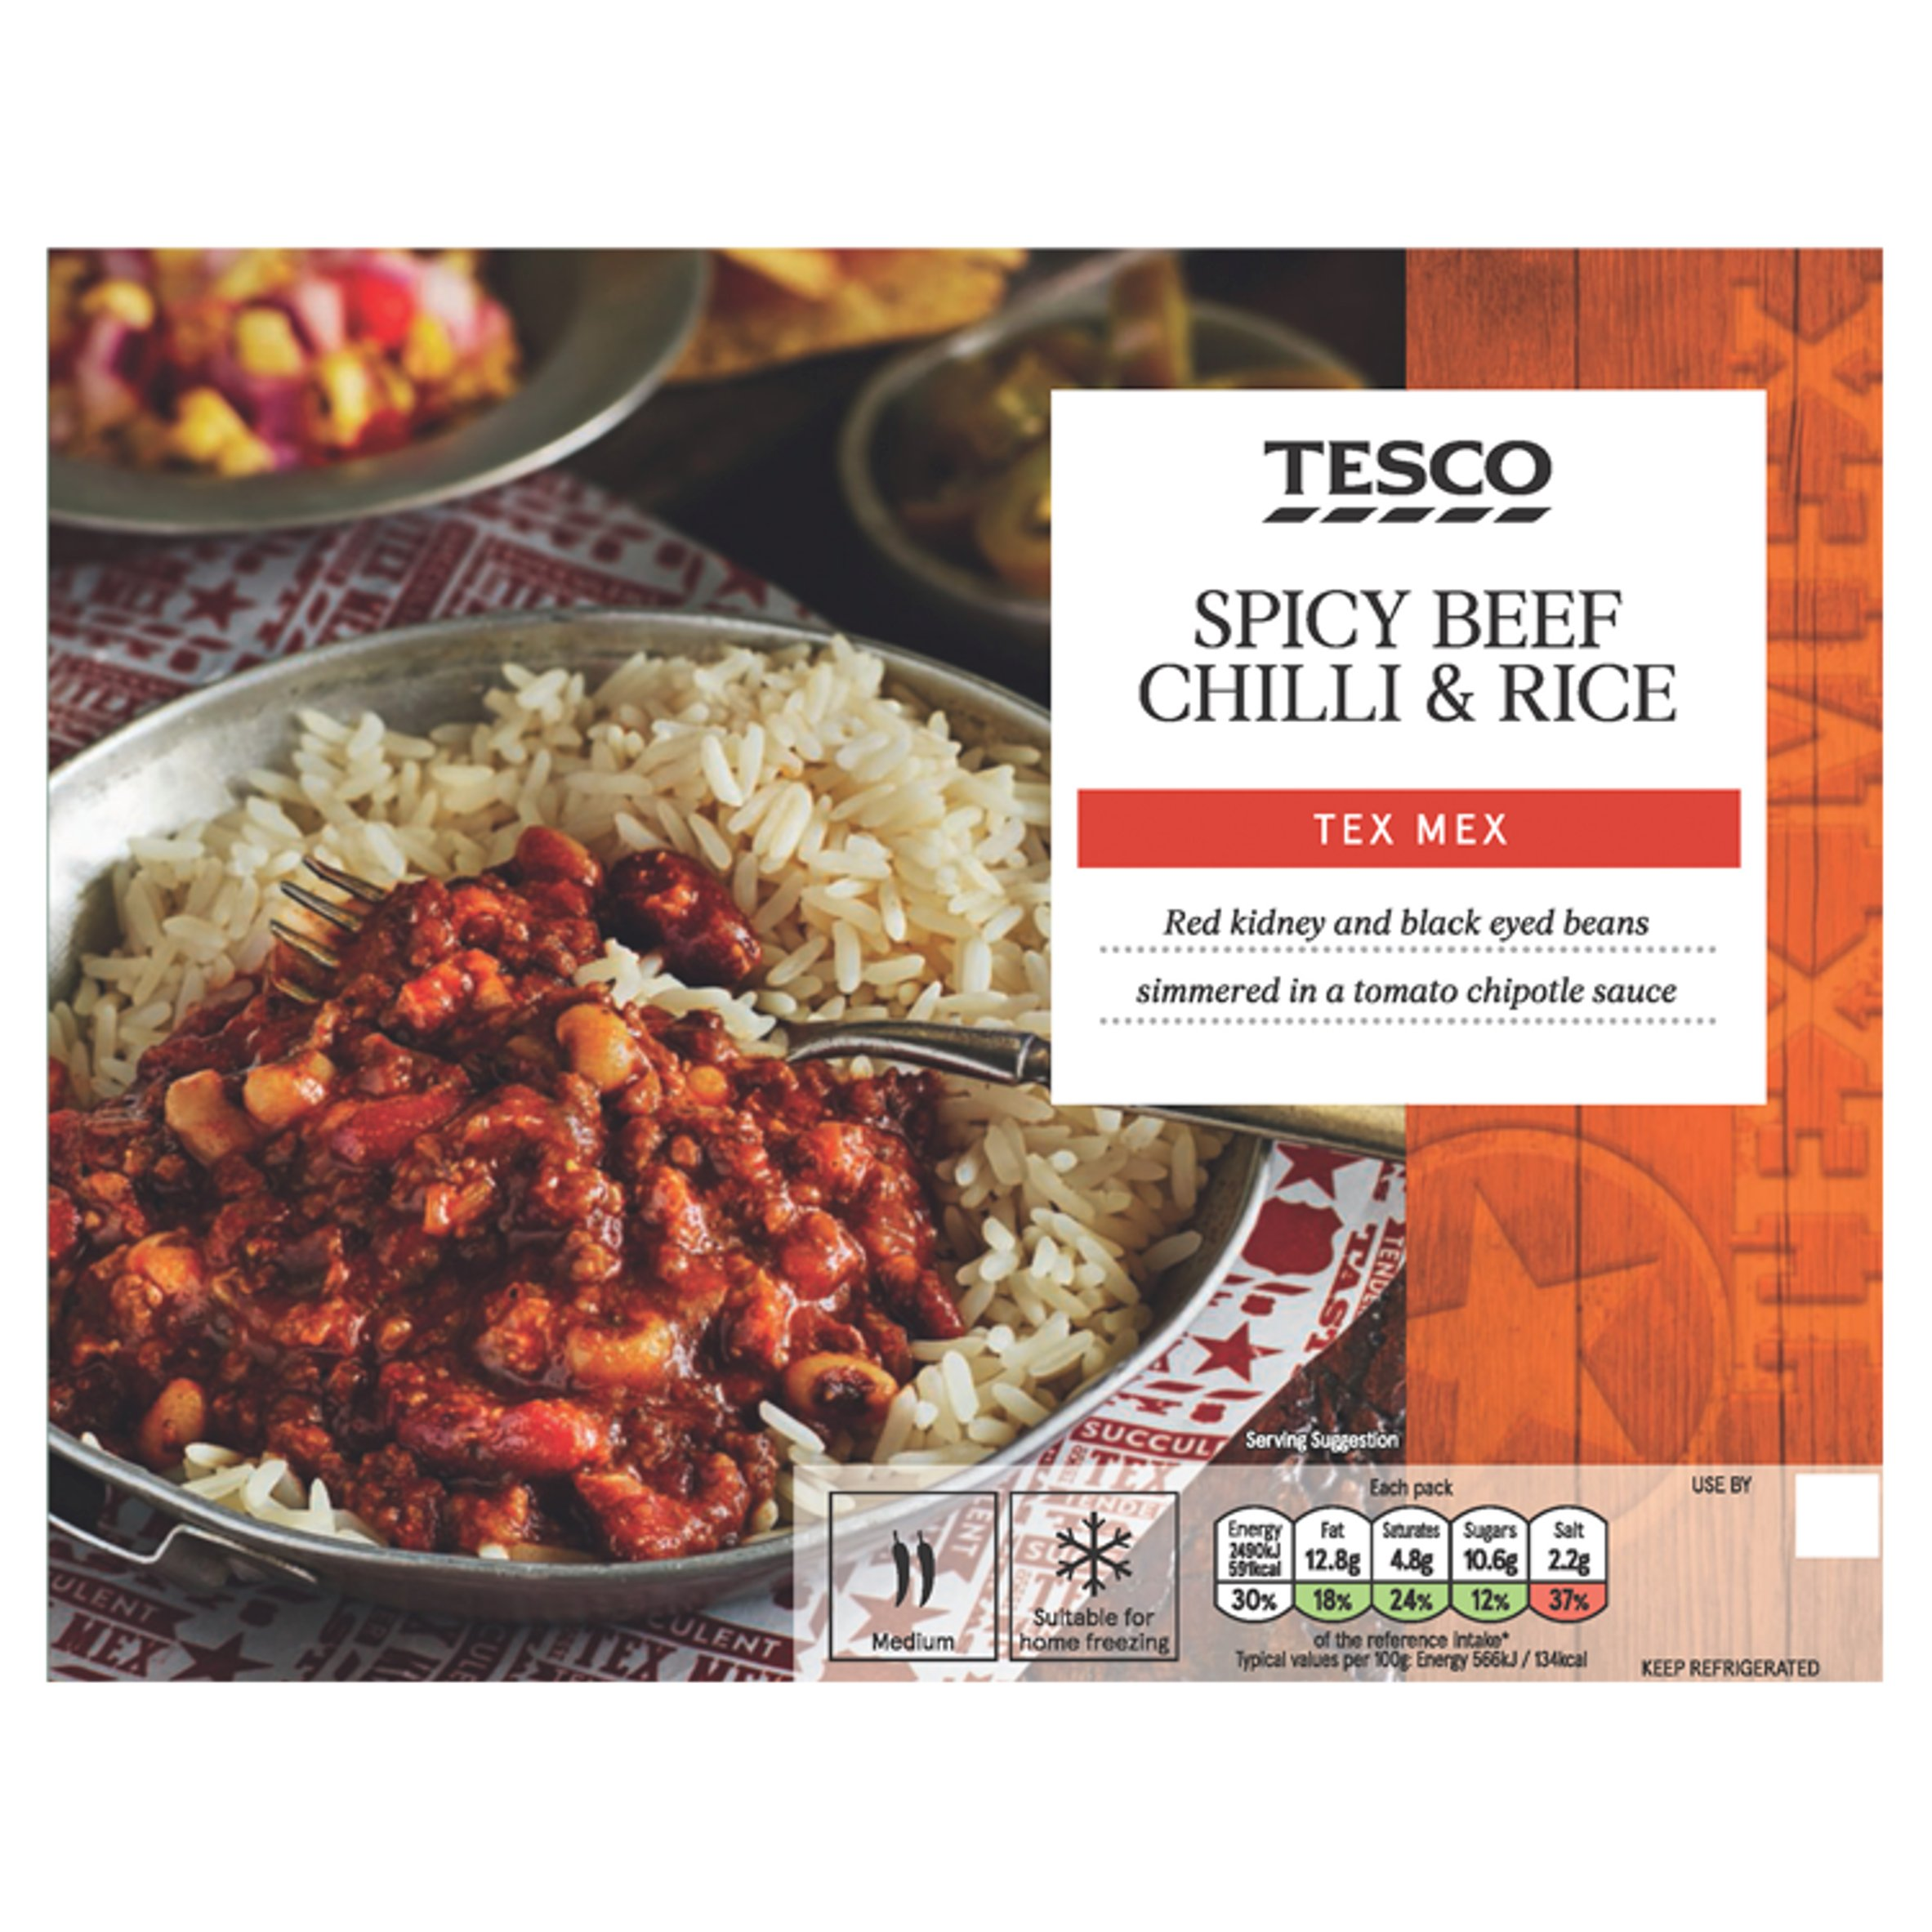 Tesco Spicy Beef Chilli & Rice 450G